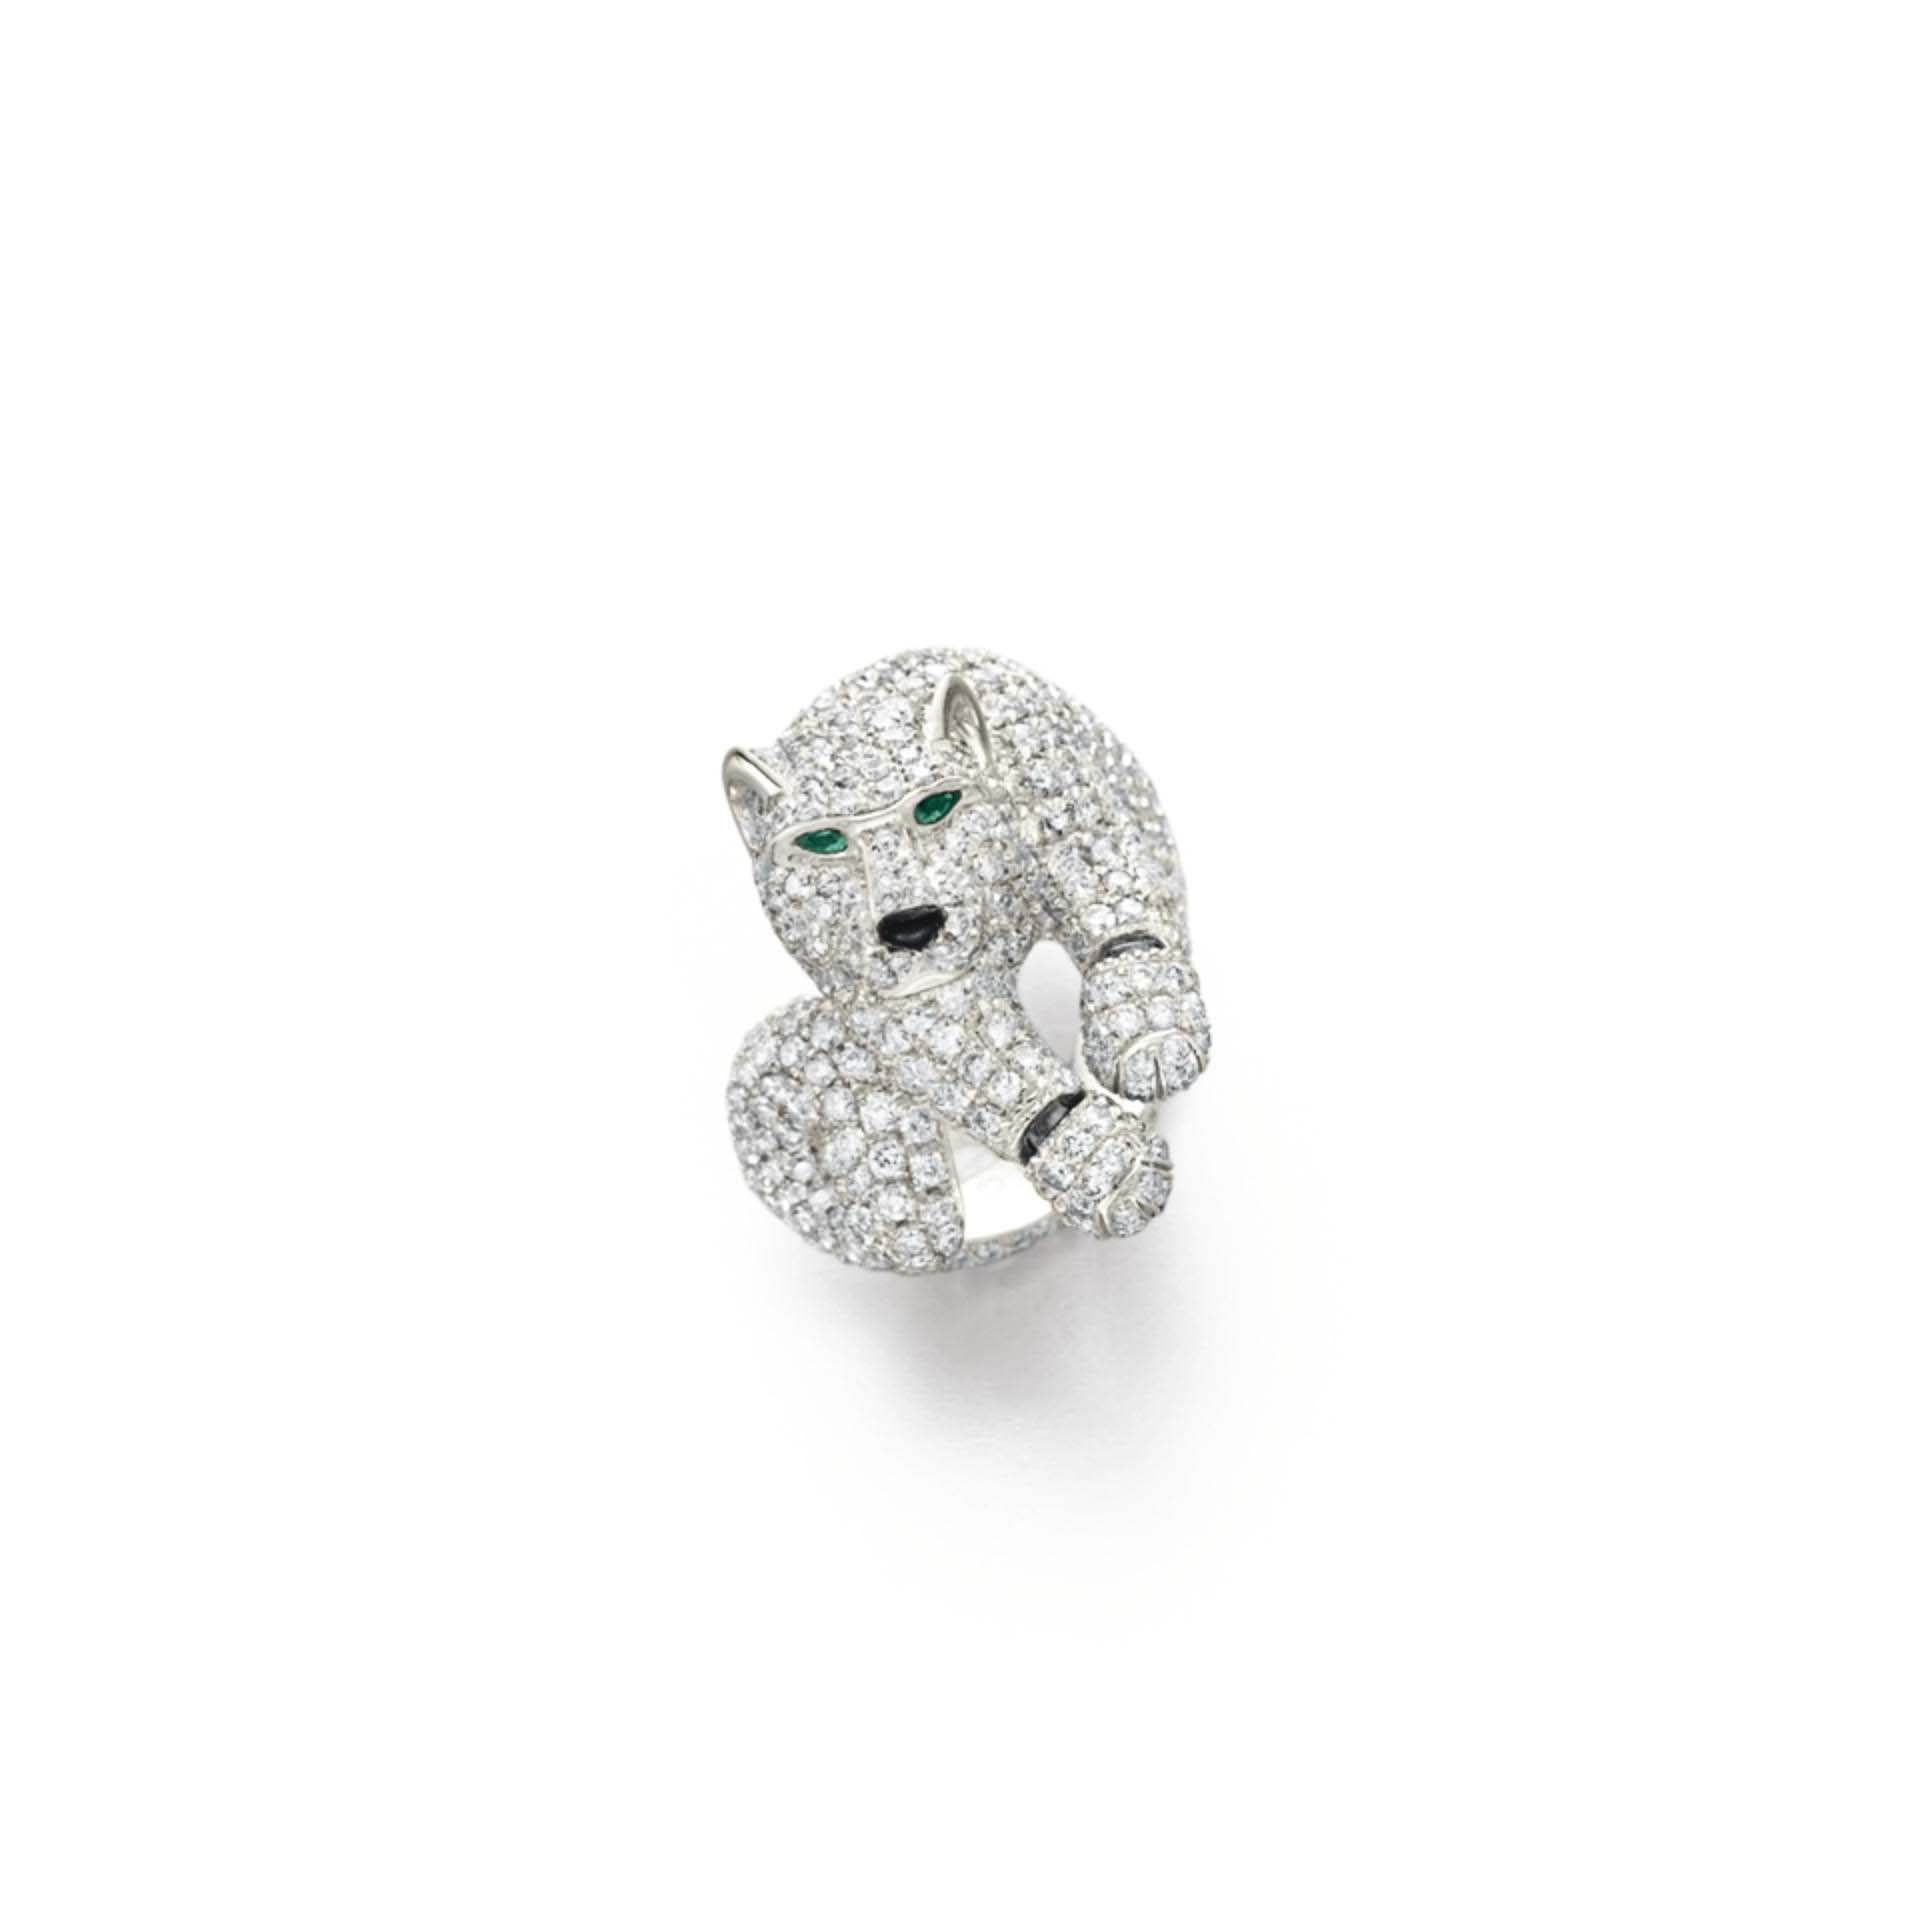 A Diamond And Emerald Quot Panther Quot Ring By Cartier Christie S